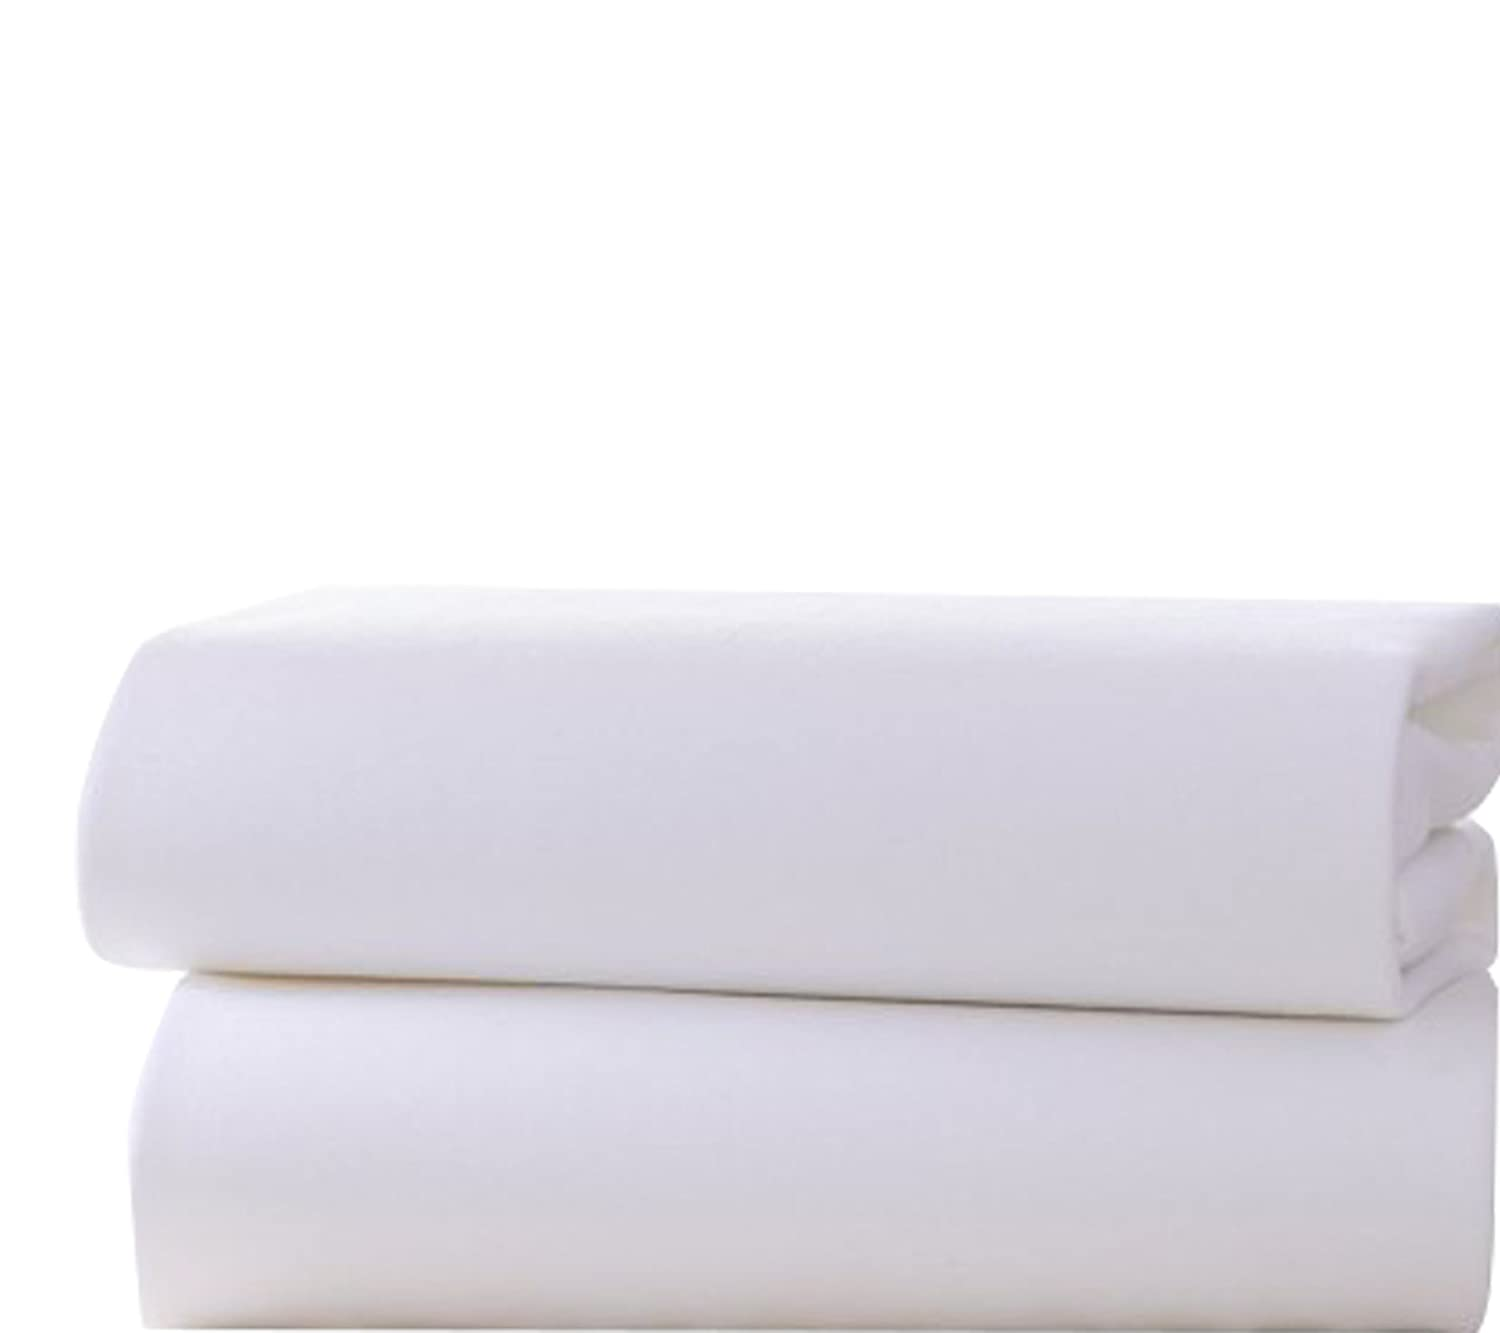 Baby Cot Bed Fitted Sheet 2 Pack Jersey Sheet Bed Sheet Newborn Toddler White 60 x 120cm)